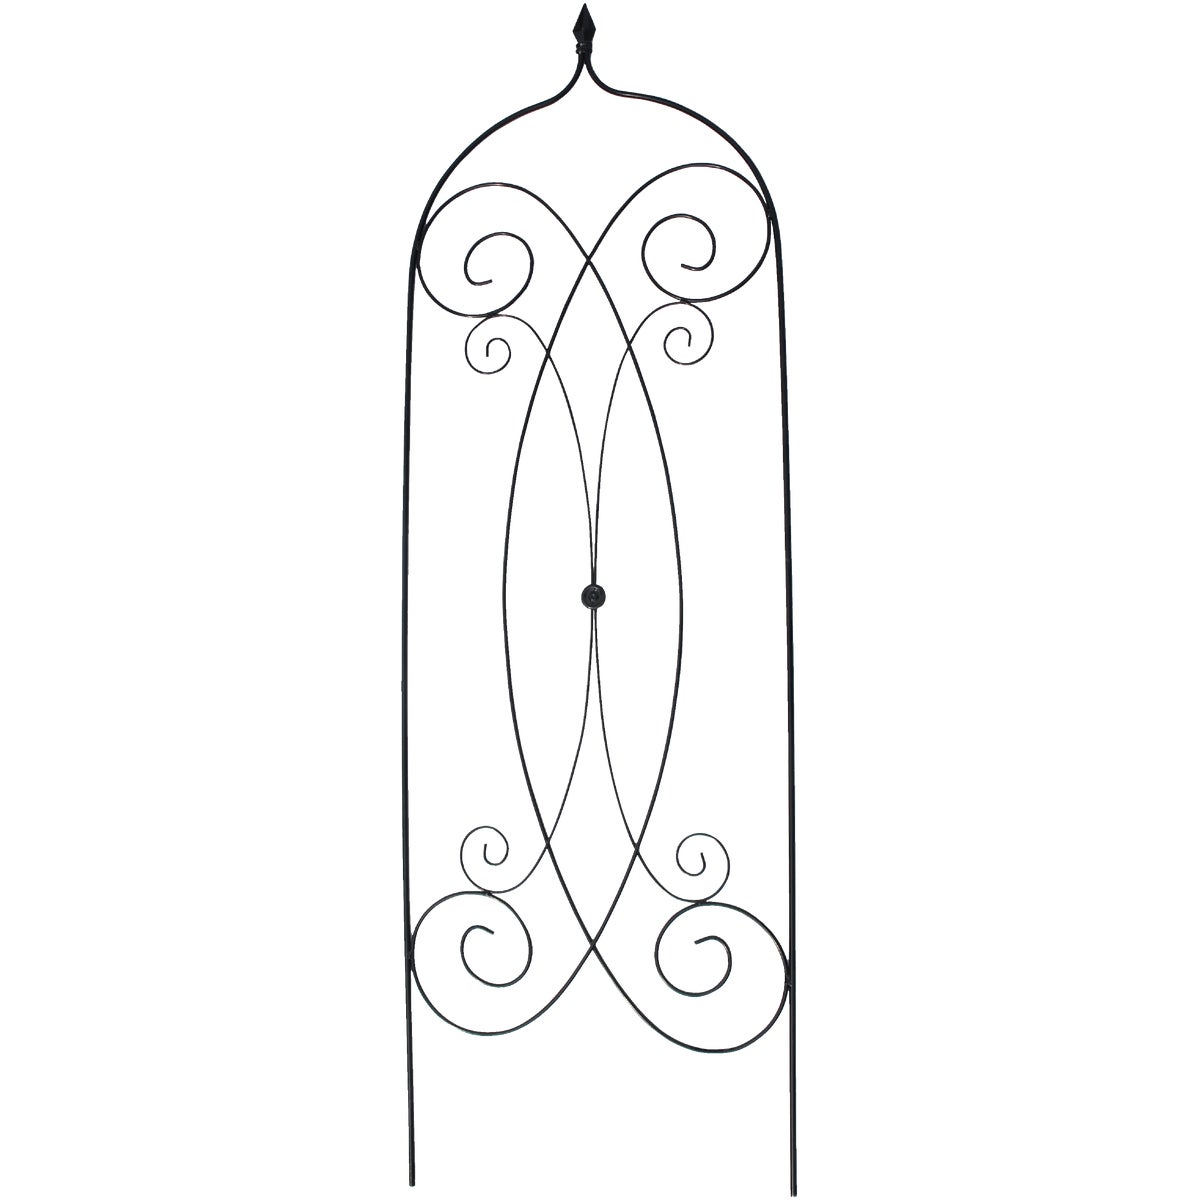 "67"" POINTD METAL TRELLIS - GZ92329 by Do it Best"